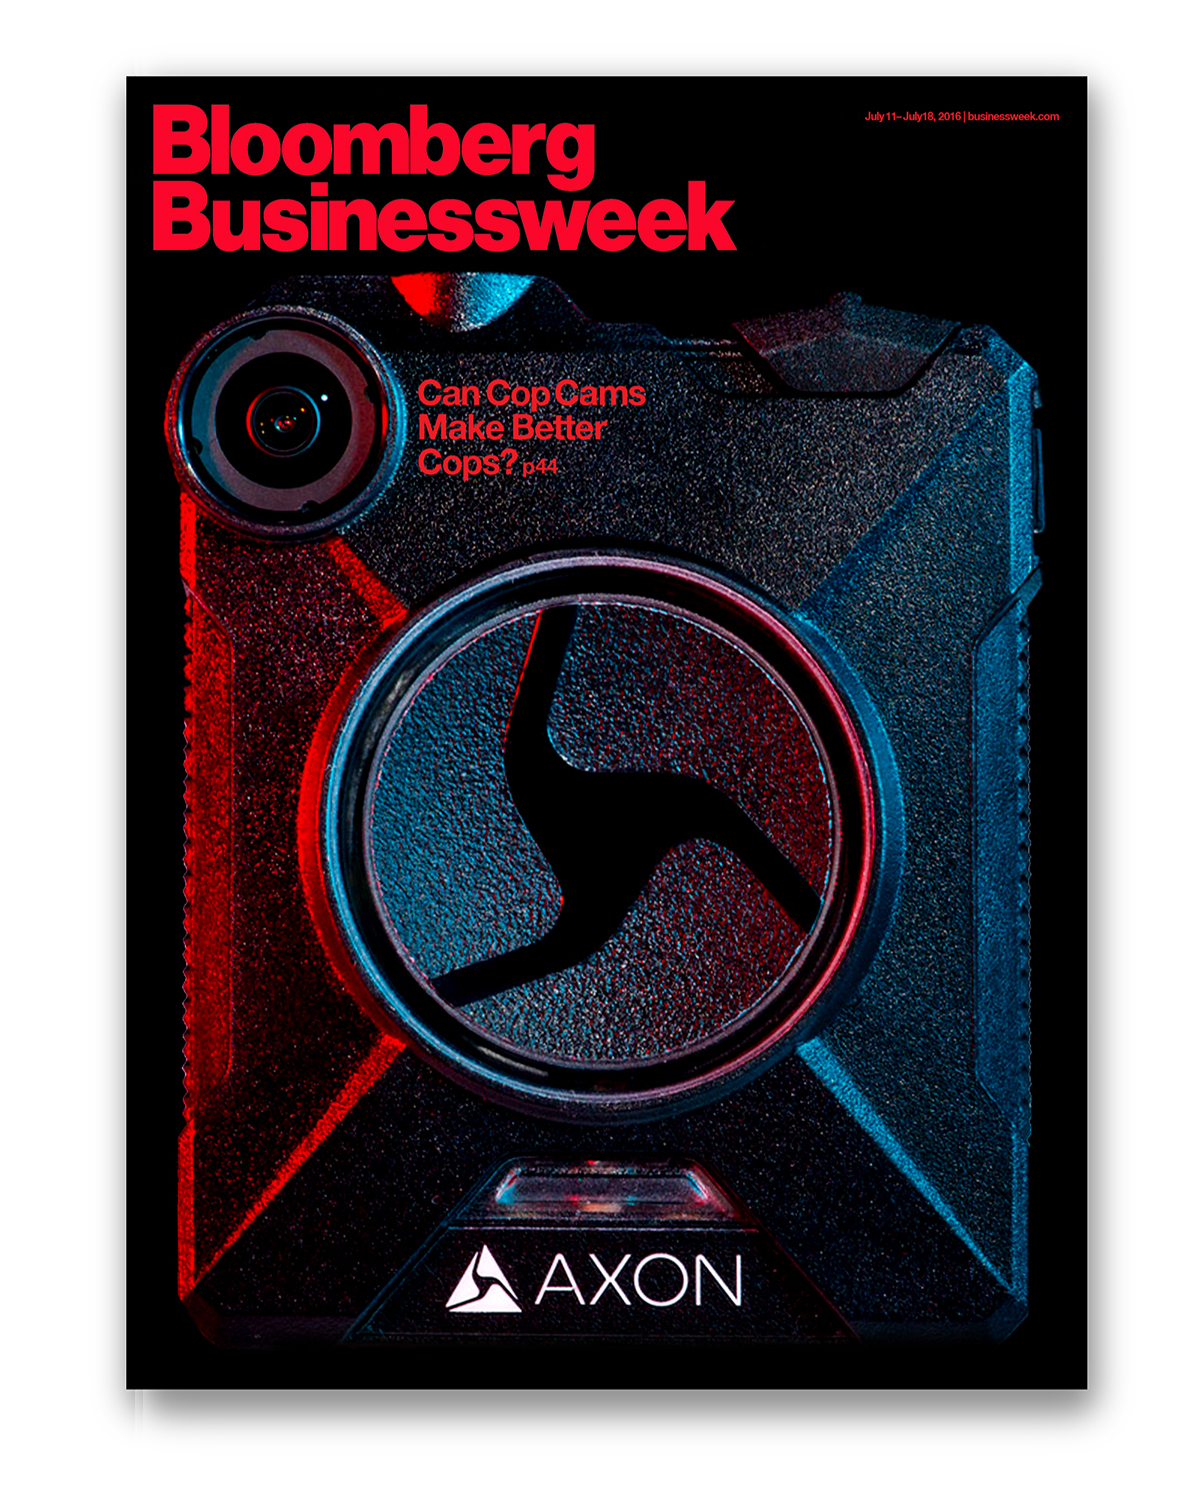 Axon's Cover of Bloomberg Businessweek magazine